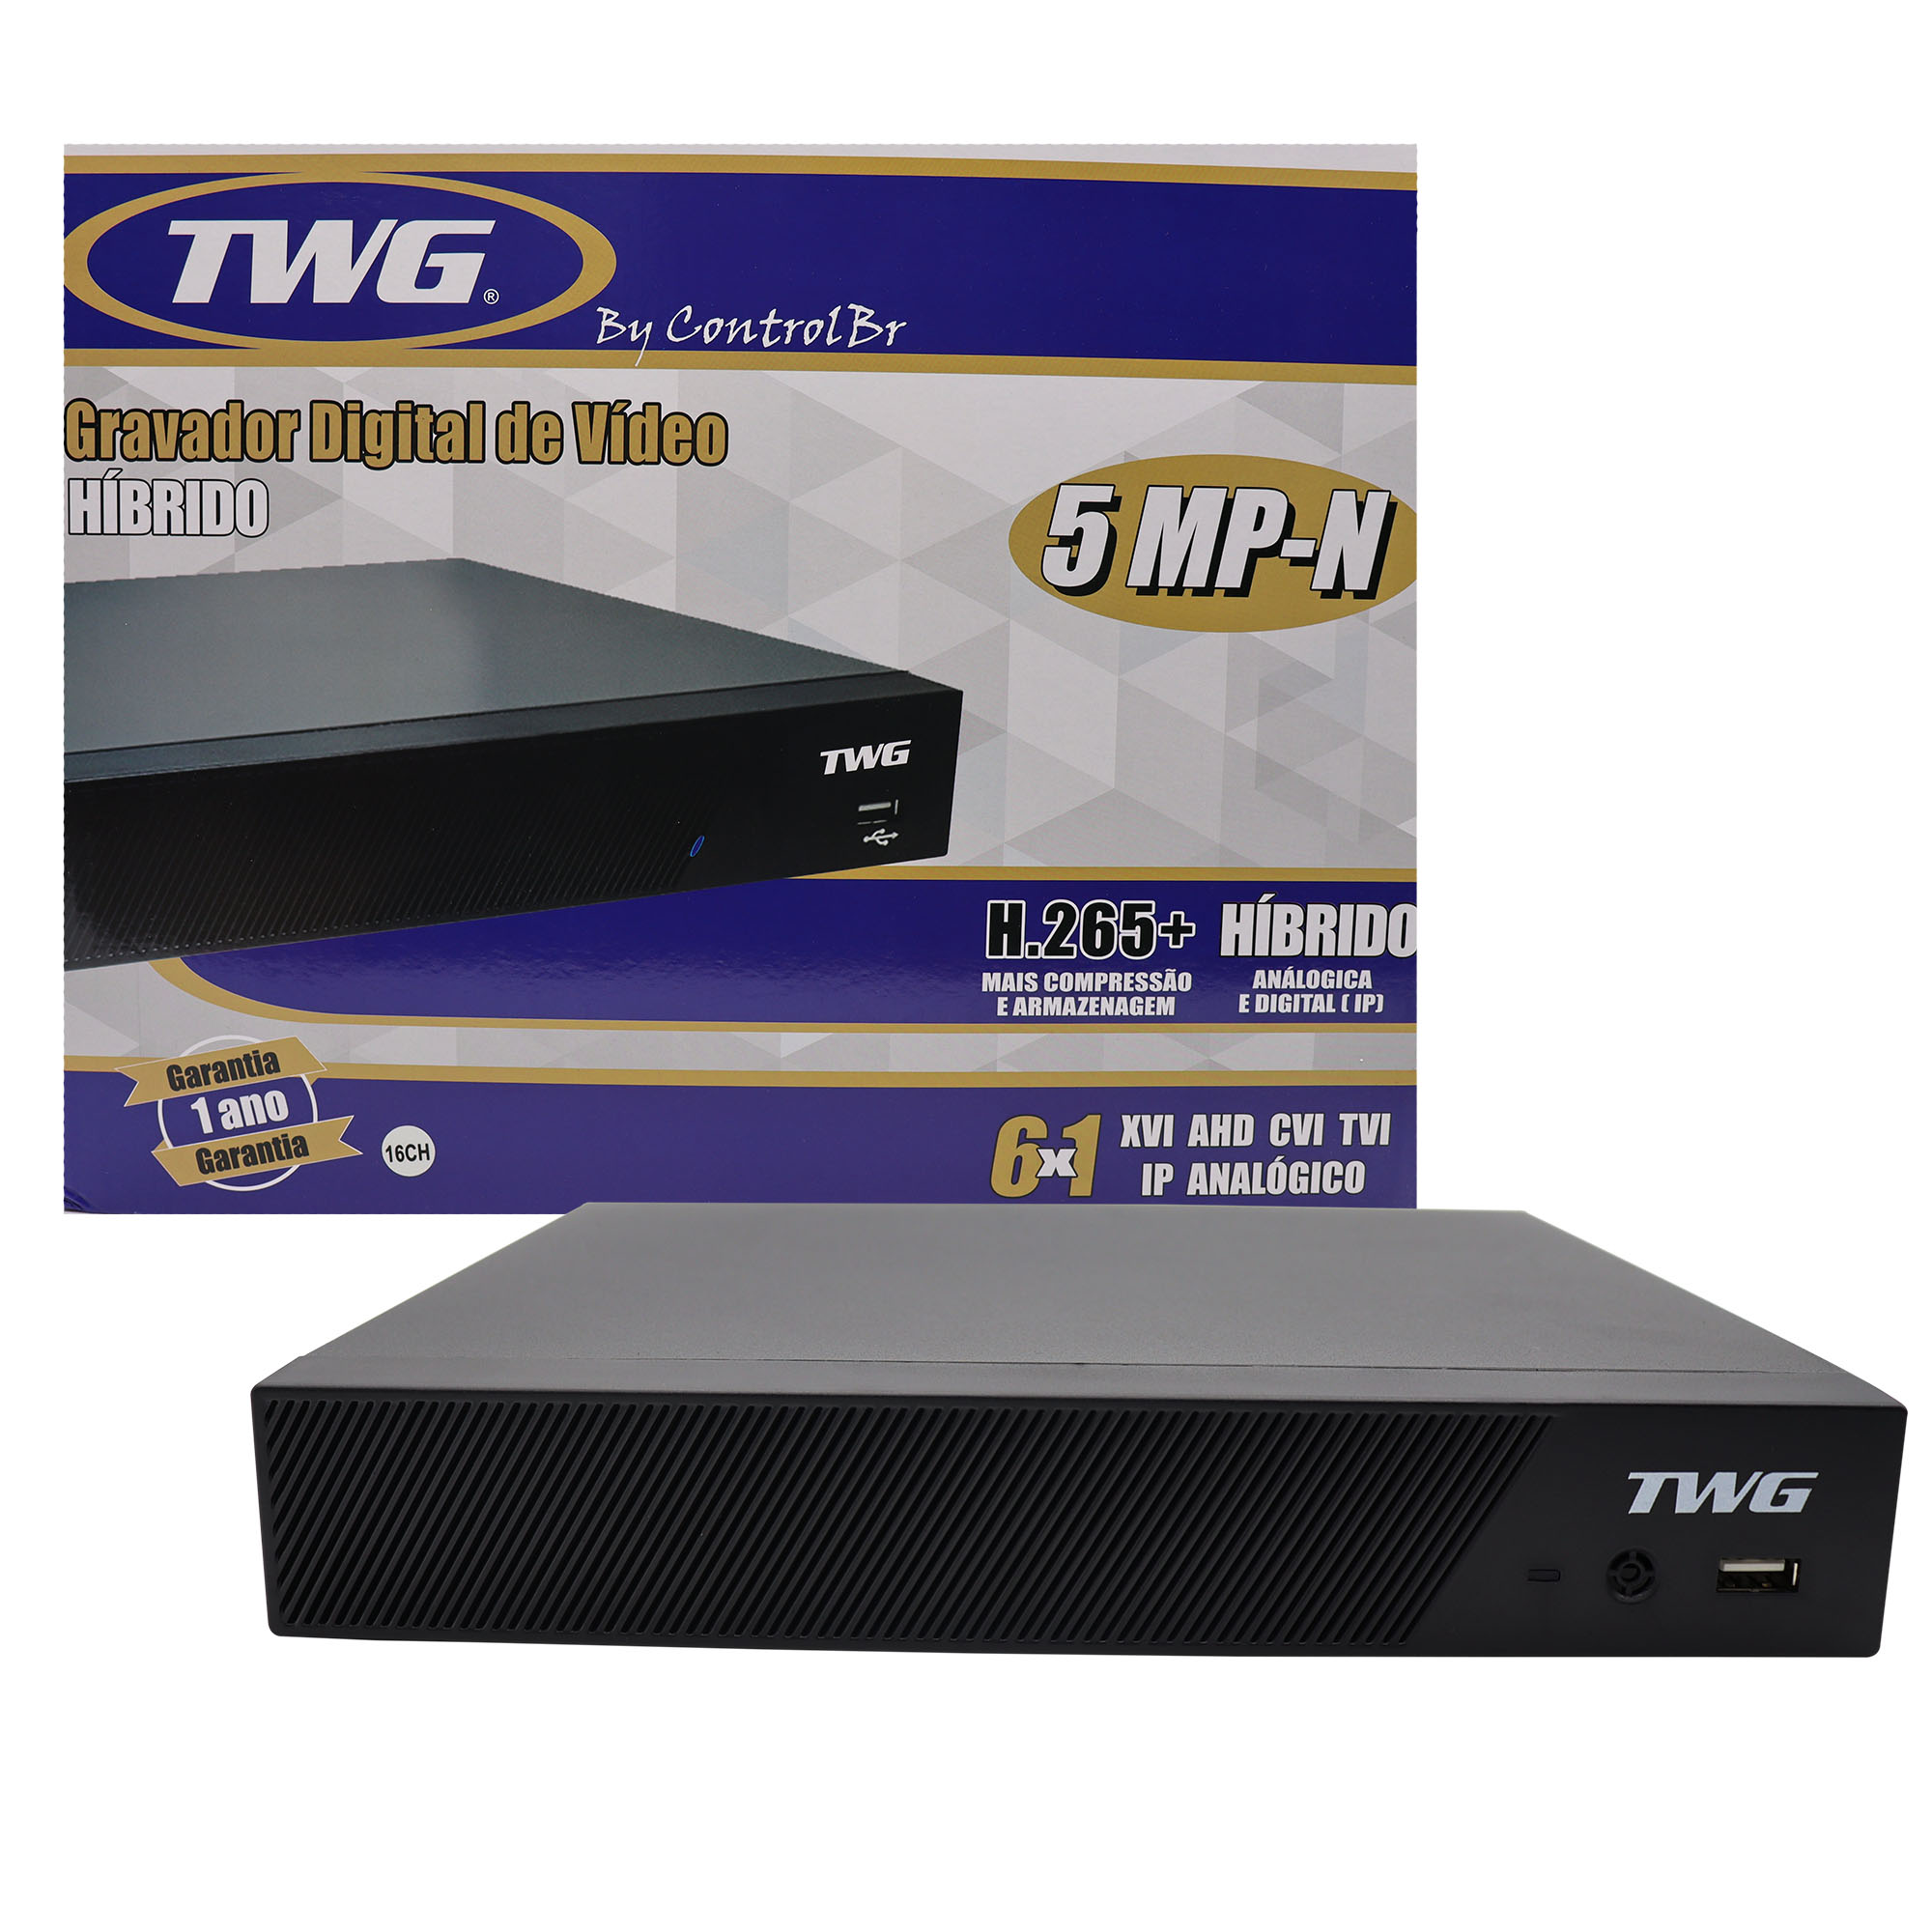 DVR Stand Alone 16 Canais Full HD Detect 6 em 1 TWG